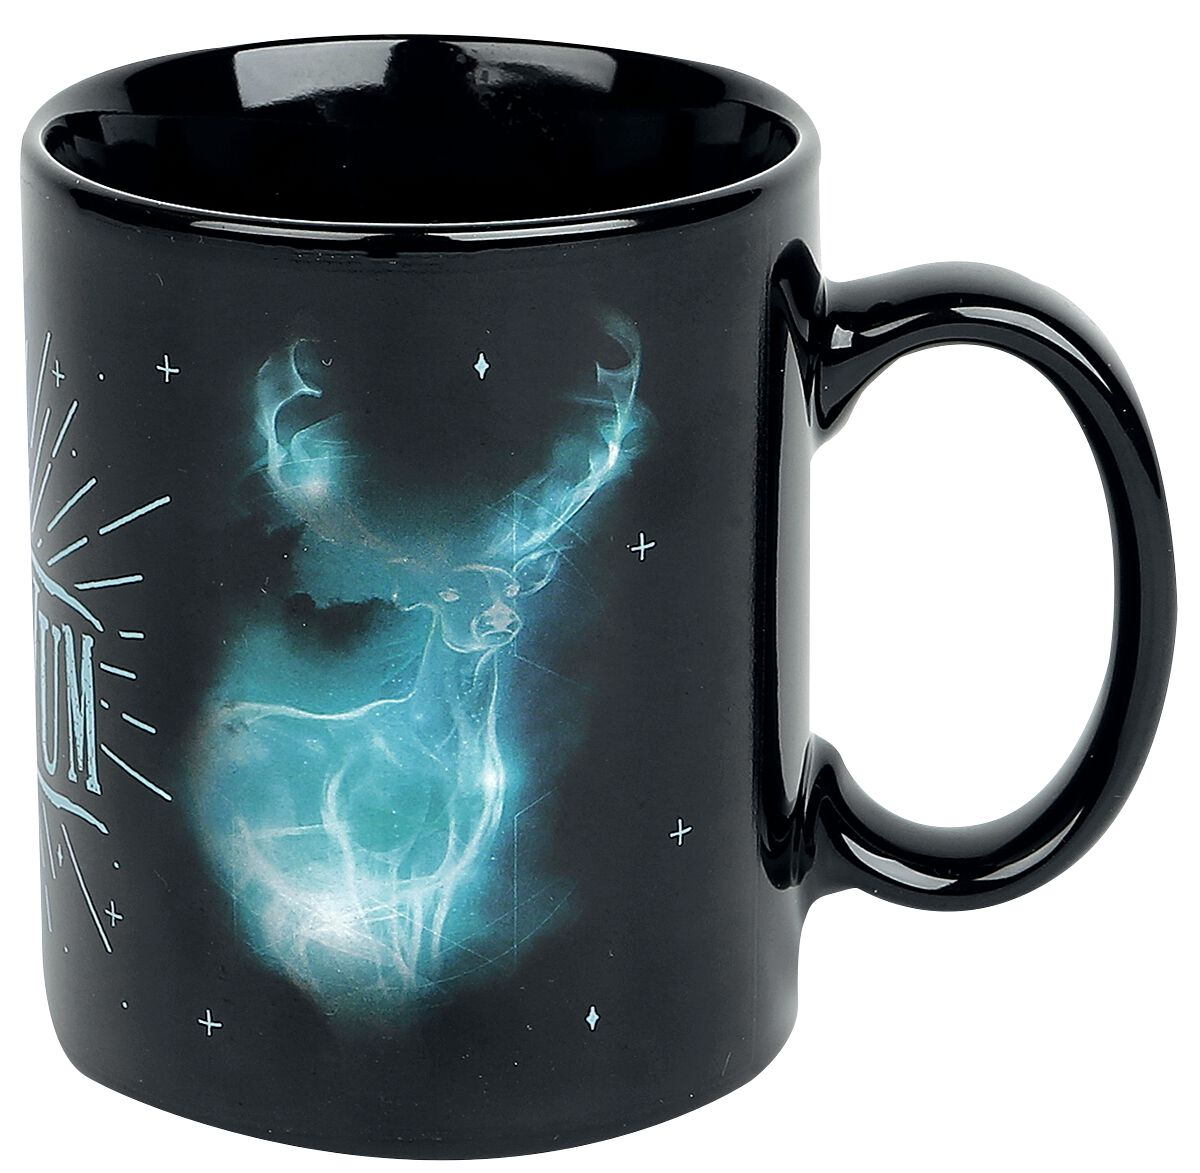 Image of   Harry Potter Expecto Patronum - lyser i mørket Krus multifarvet